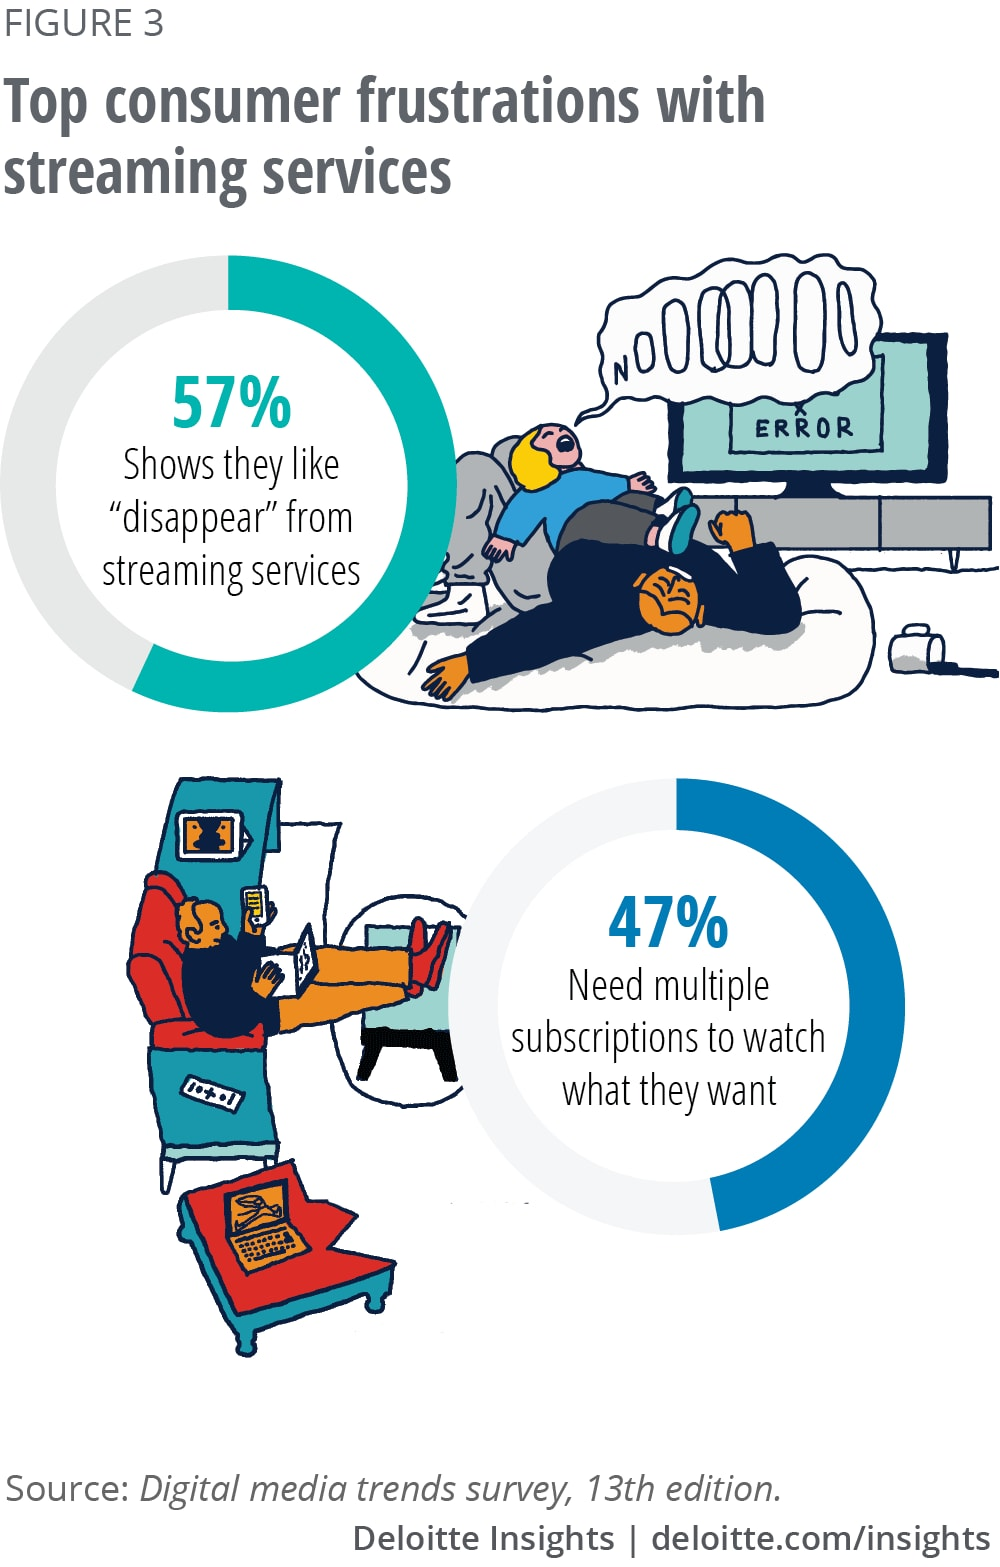 Top consumer frustrations with streaming services